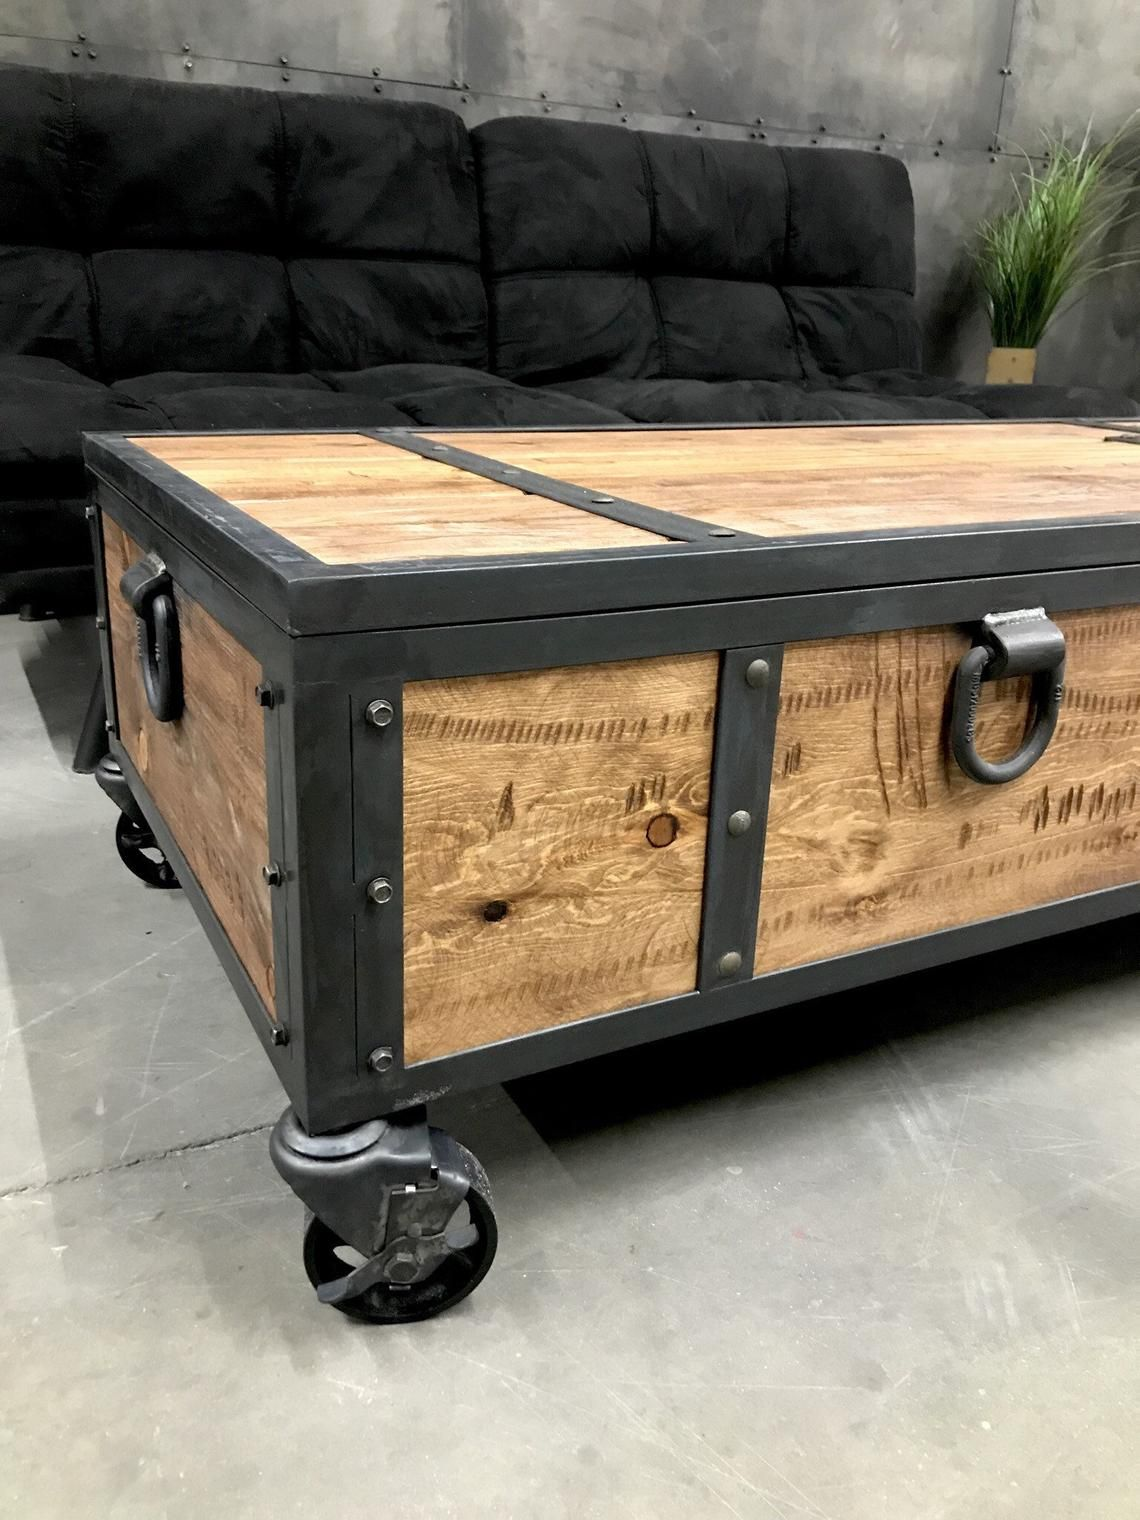 Industrial Locking Chest Rustic Coffee Table Storage Bench Etsy Rustic Coffee Tables Rustic Storage Bench Coffee Table Wood